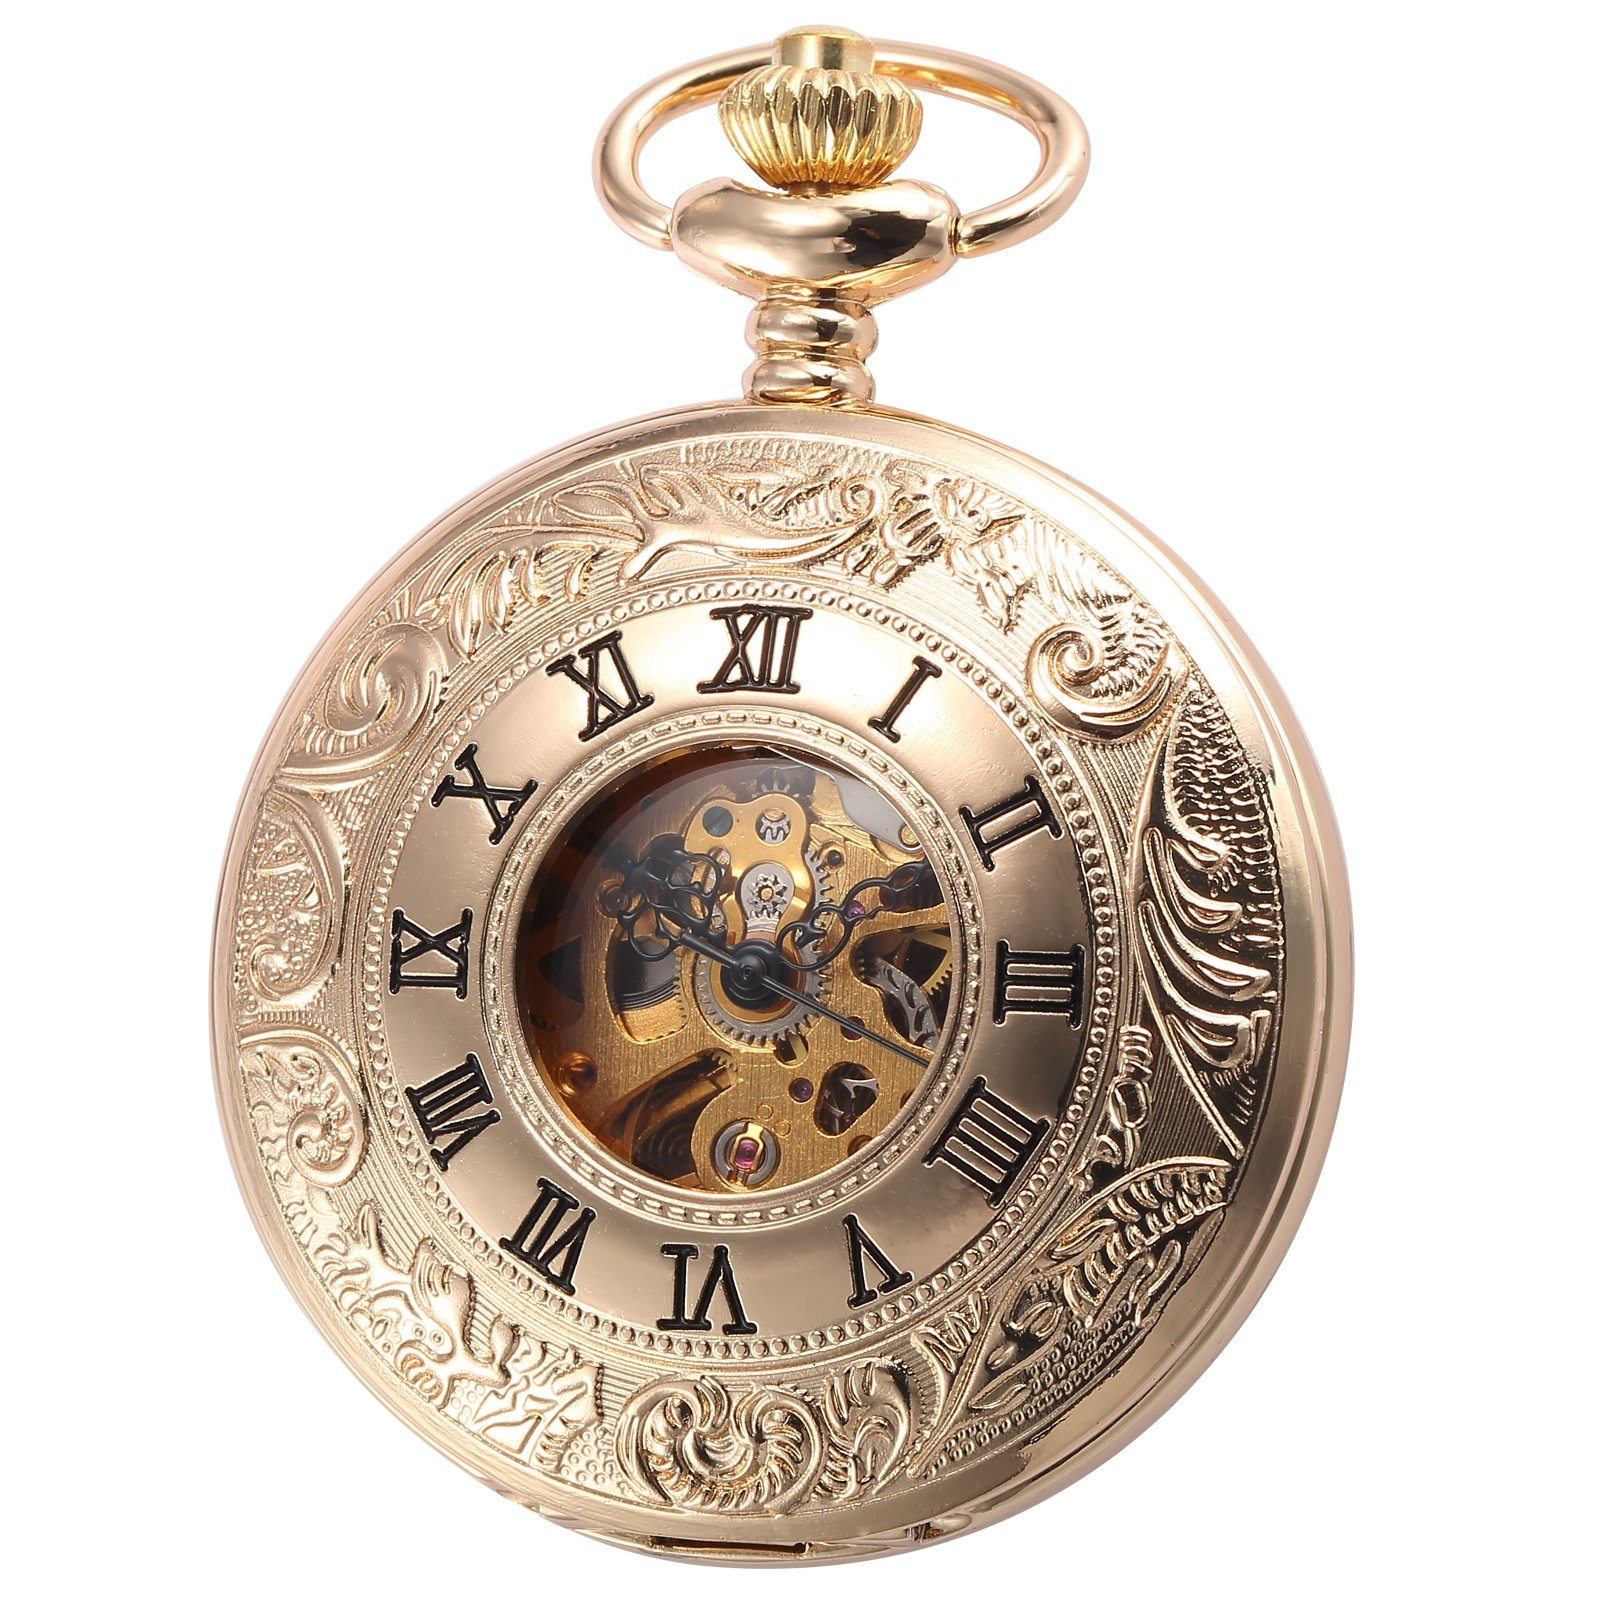 AMPM24 Mechanical Hand Wind Pocket Watch Skeleton Unisex Golden Case WPK188